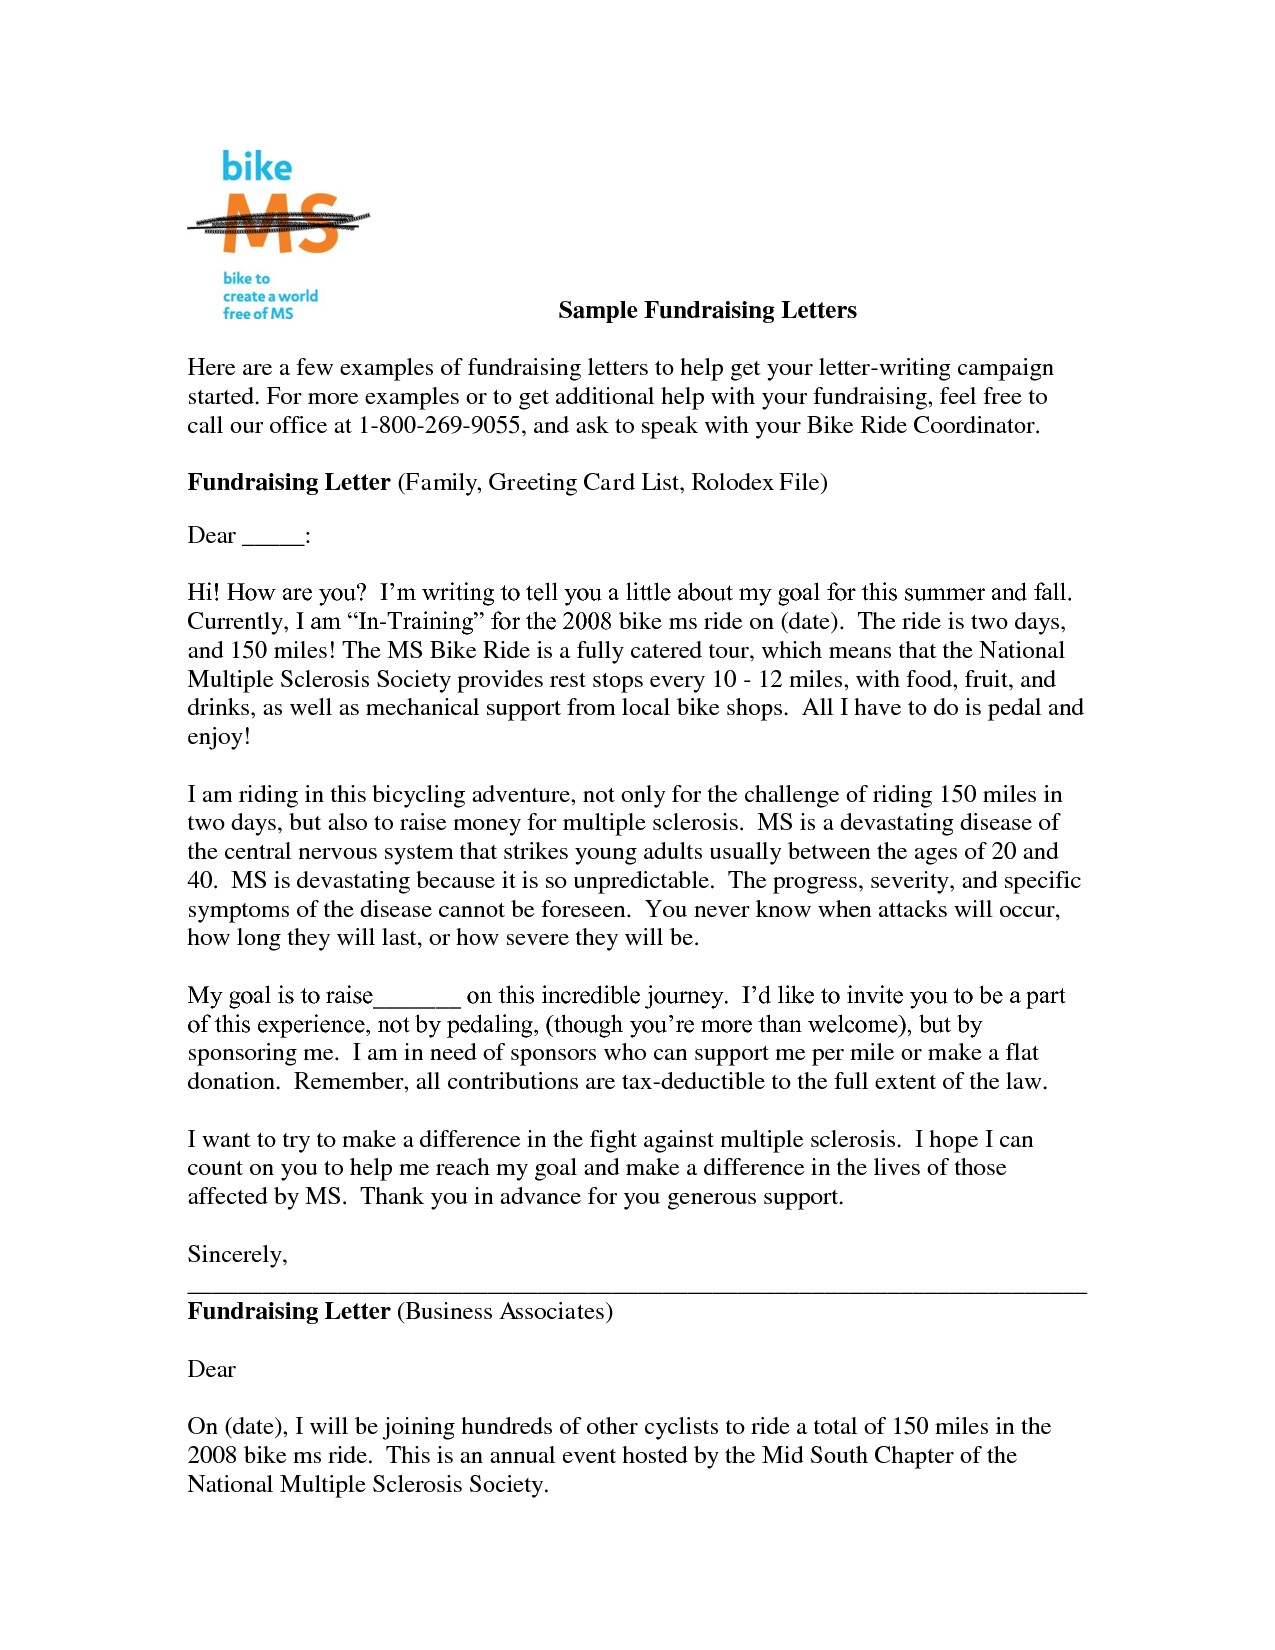 Letter for Donations for Fundraiser Template - Fundraising Appeal Letter format Best Sample Fundraising Letter